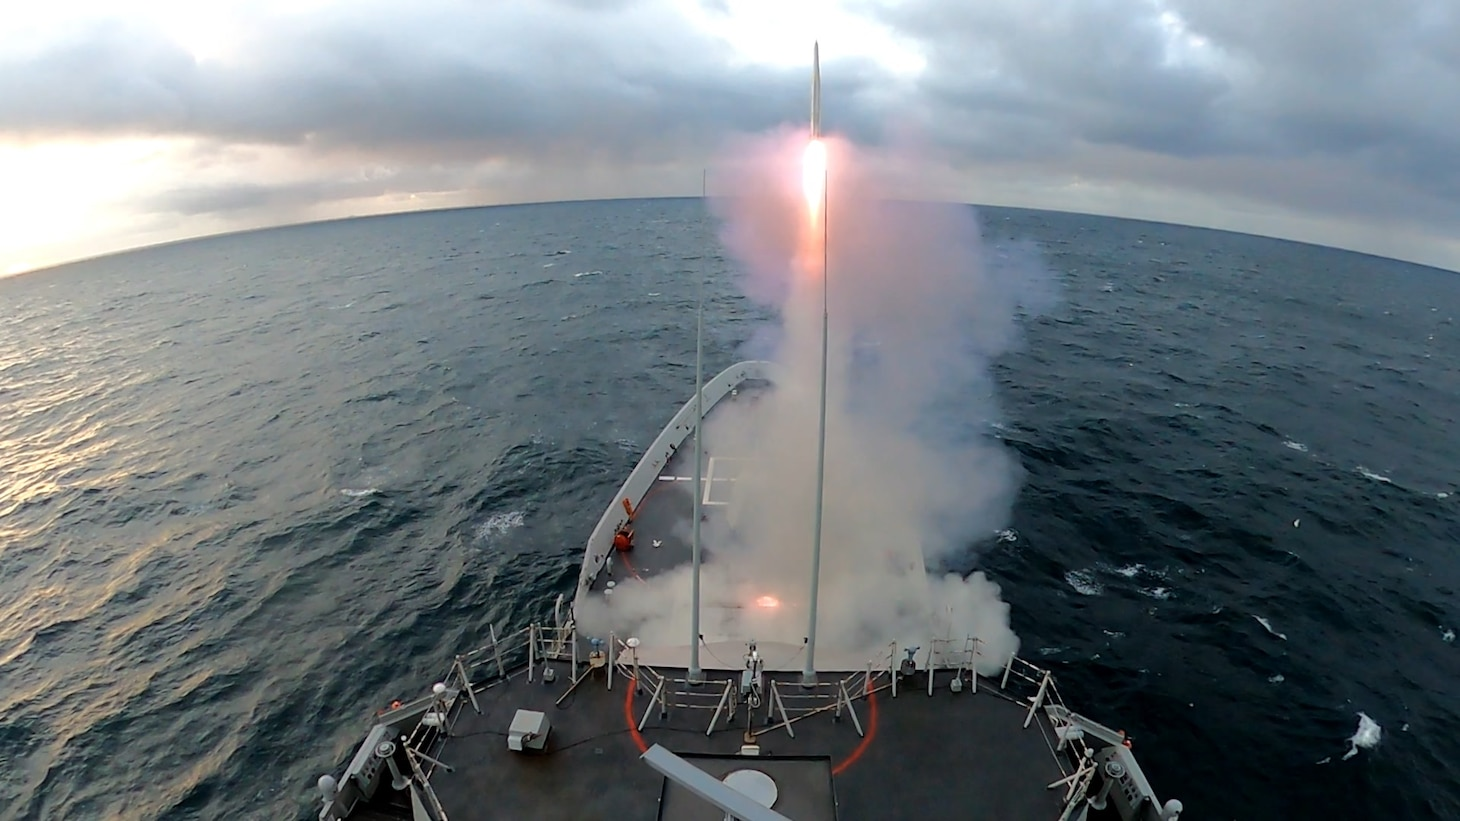 210521-N-NO901-0001 UK MOD HEBRIDES RANGE (May 21, 2021) The Spanish Navy Alvaro de Bazan (F100) class guided-missile frigate Cristóbal Colon (F-105) launches a supersonic missile with one Evolved Sea-Sparrow-Missile (ESSM), making skin-to-skin contact, during exercise At-Sea Demo/Formidable Shield, May 21, 2021. (U.S. Navy photo by Lt. Daniel Schuerman)